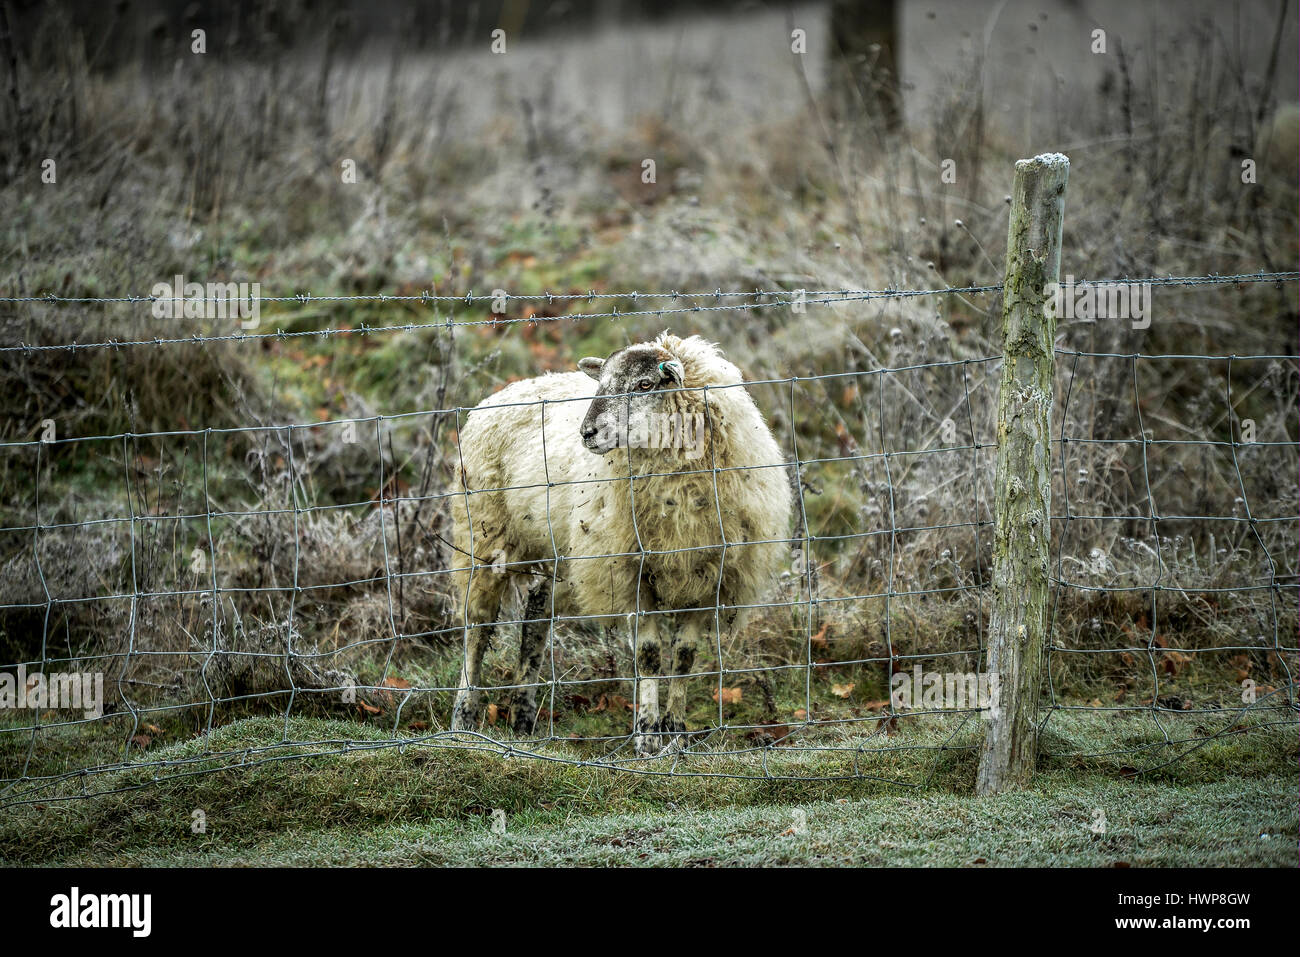 Lone sheep standing in frosty pasture - Stock Image